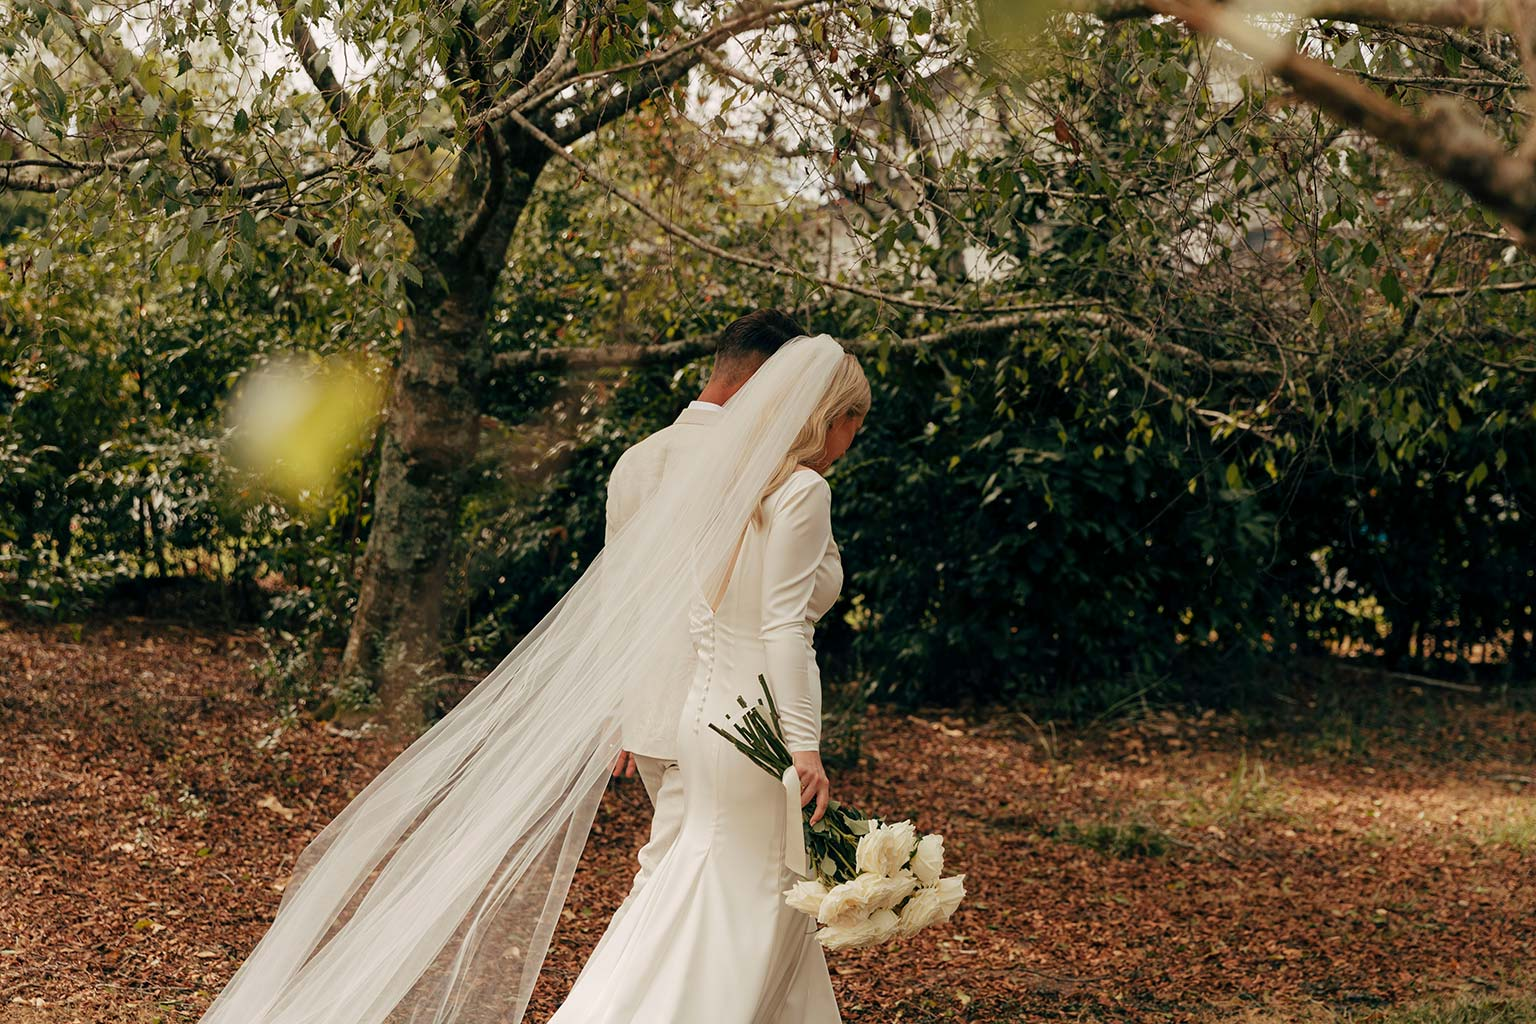 Vinka Design Bridal Wear features Real Wedding Matt and Emilia - bride and groom walk, bride wearing bespoke Audrey gown from Modern Muse Collection with beautiful long veil flowing behind her